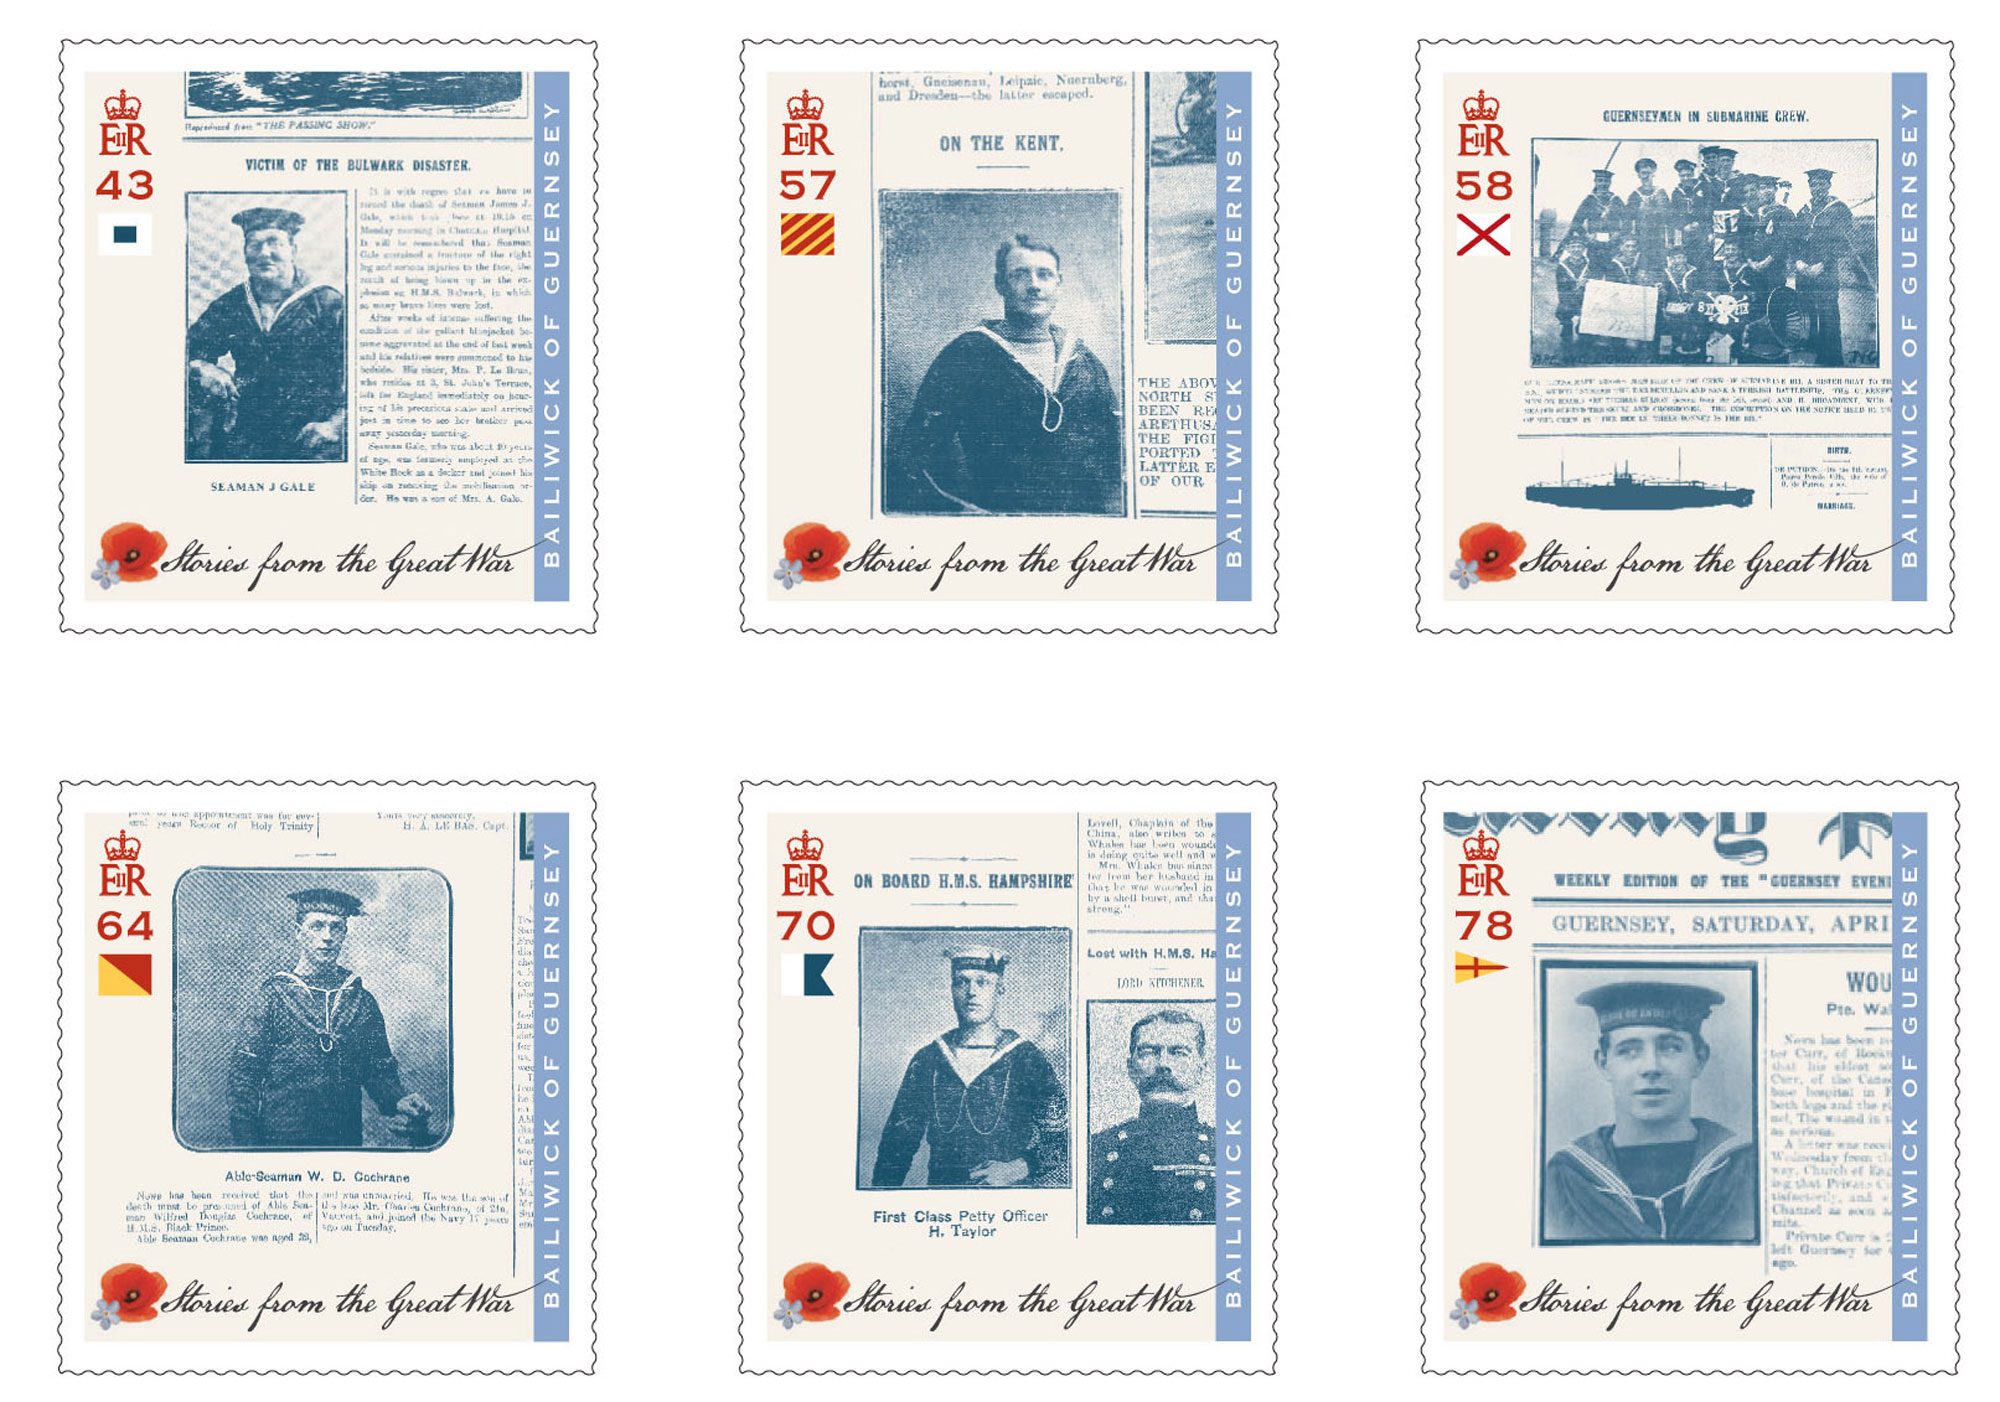 Guernsey Post issues third set of Great War Stamps